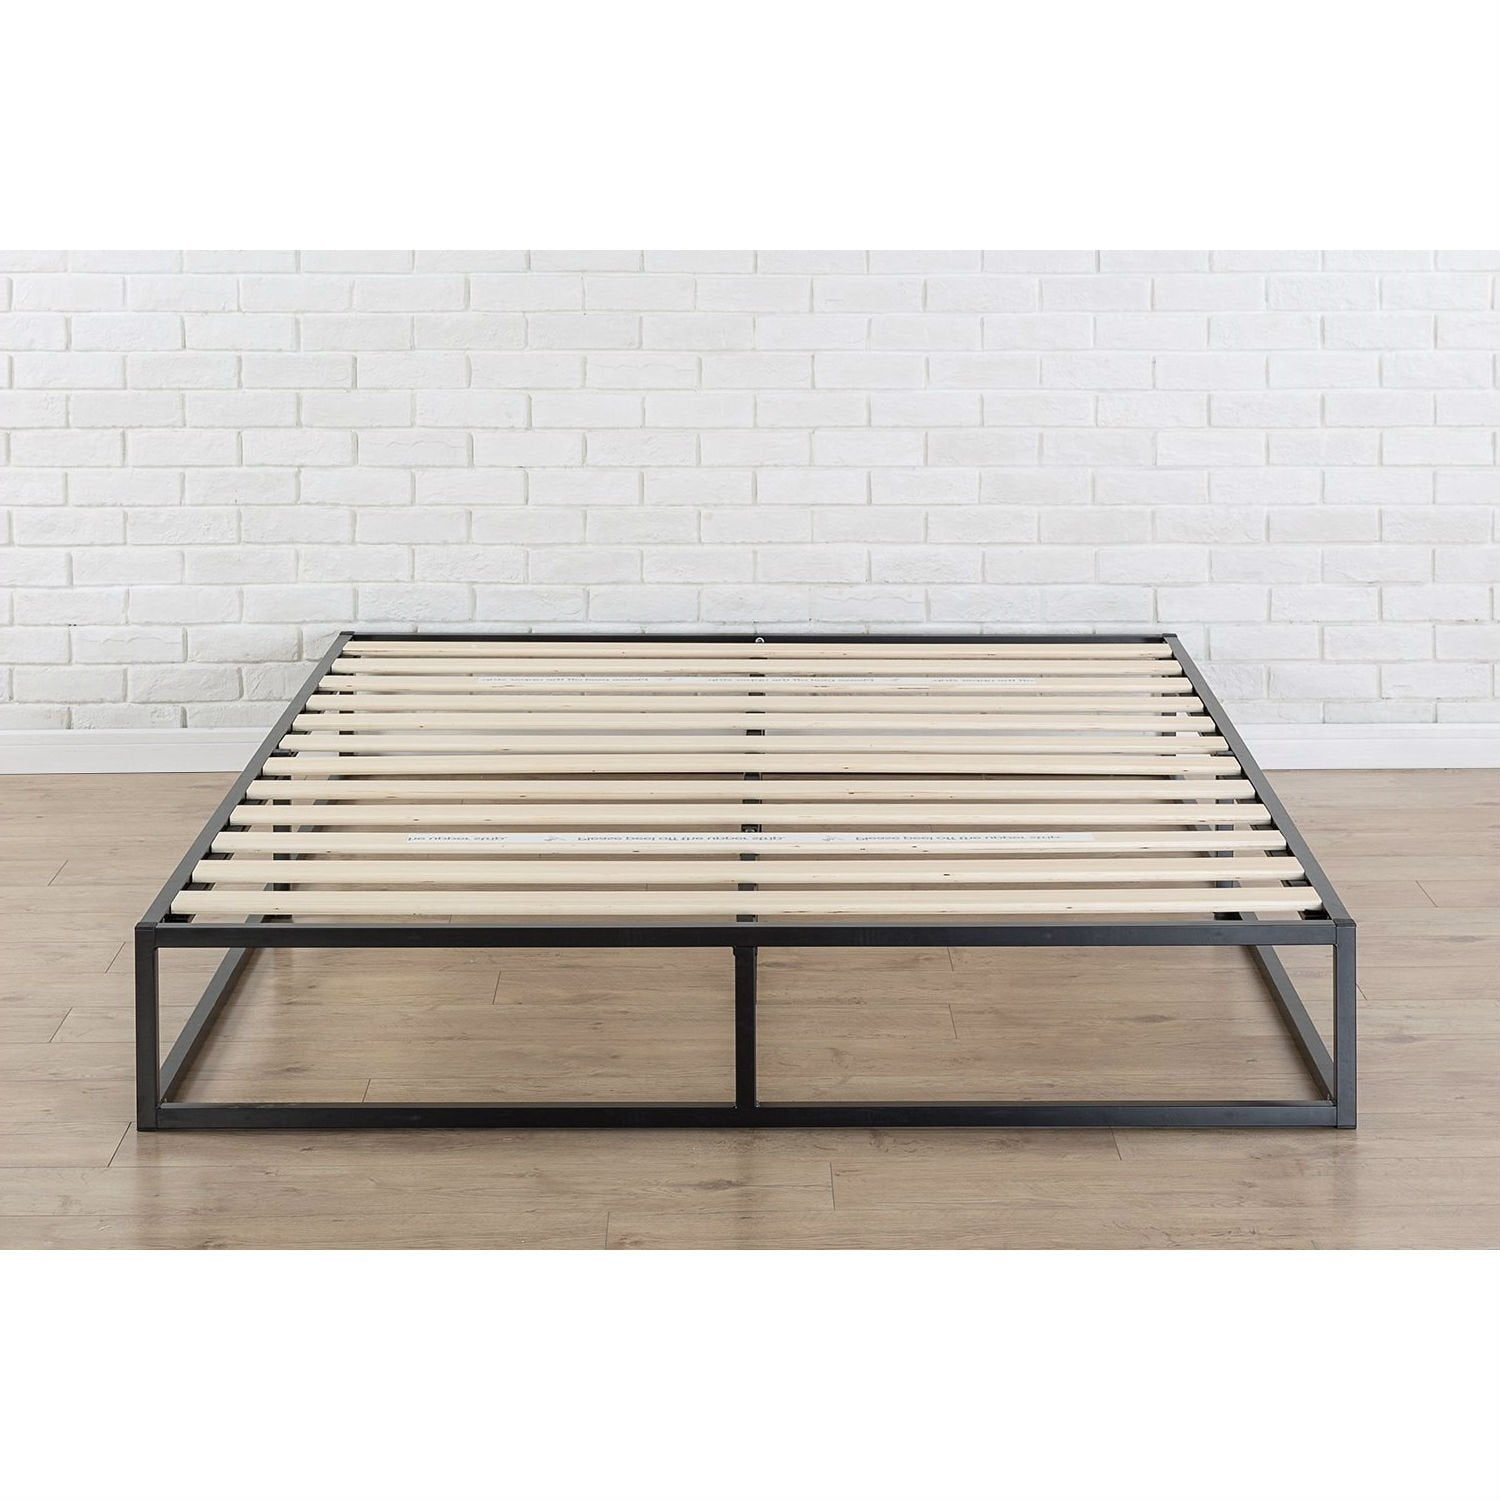 King size Modern 10-inch Low Profile Metal Platform Bed Frame with Wood Slats